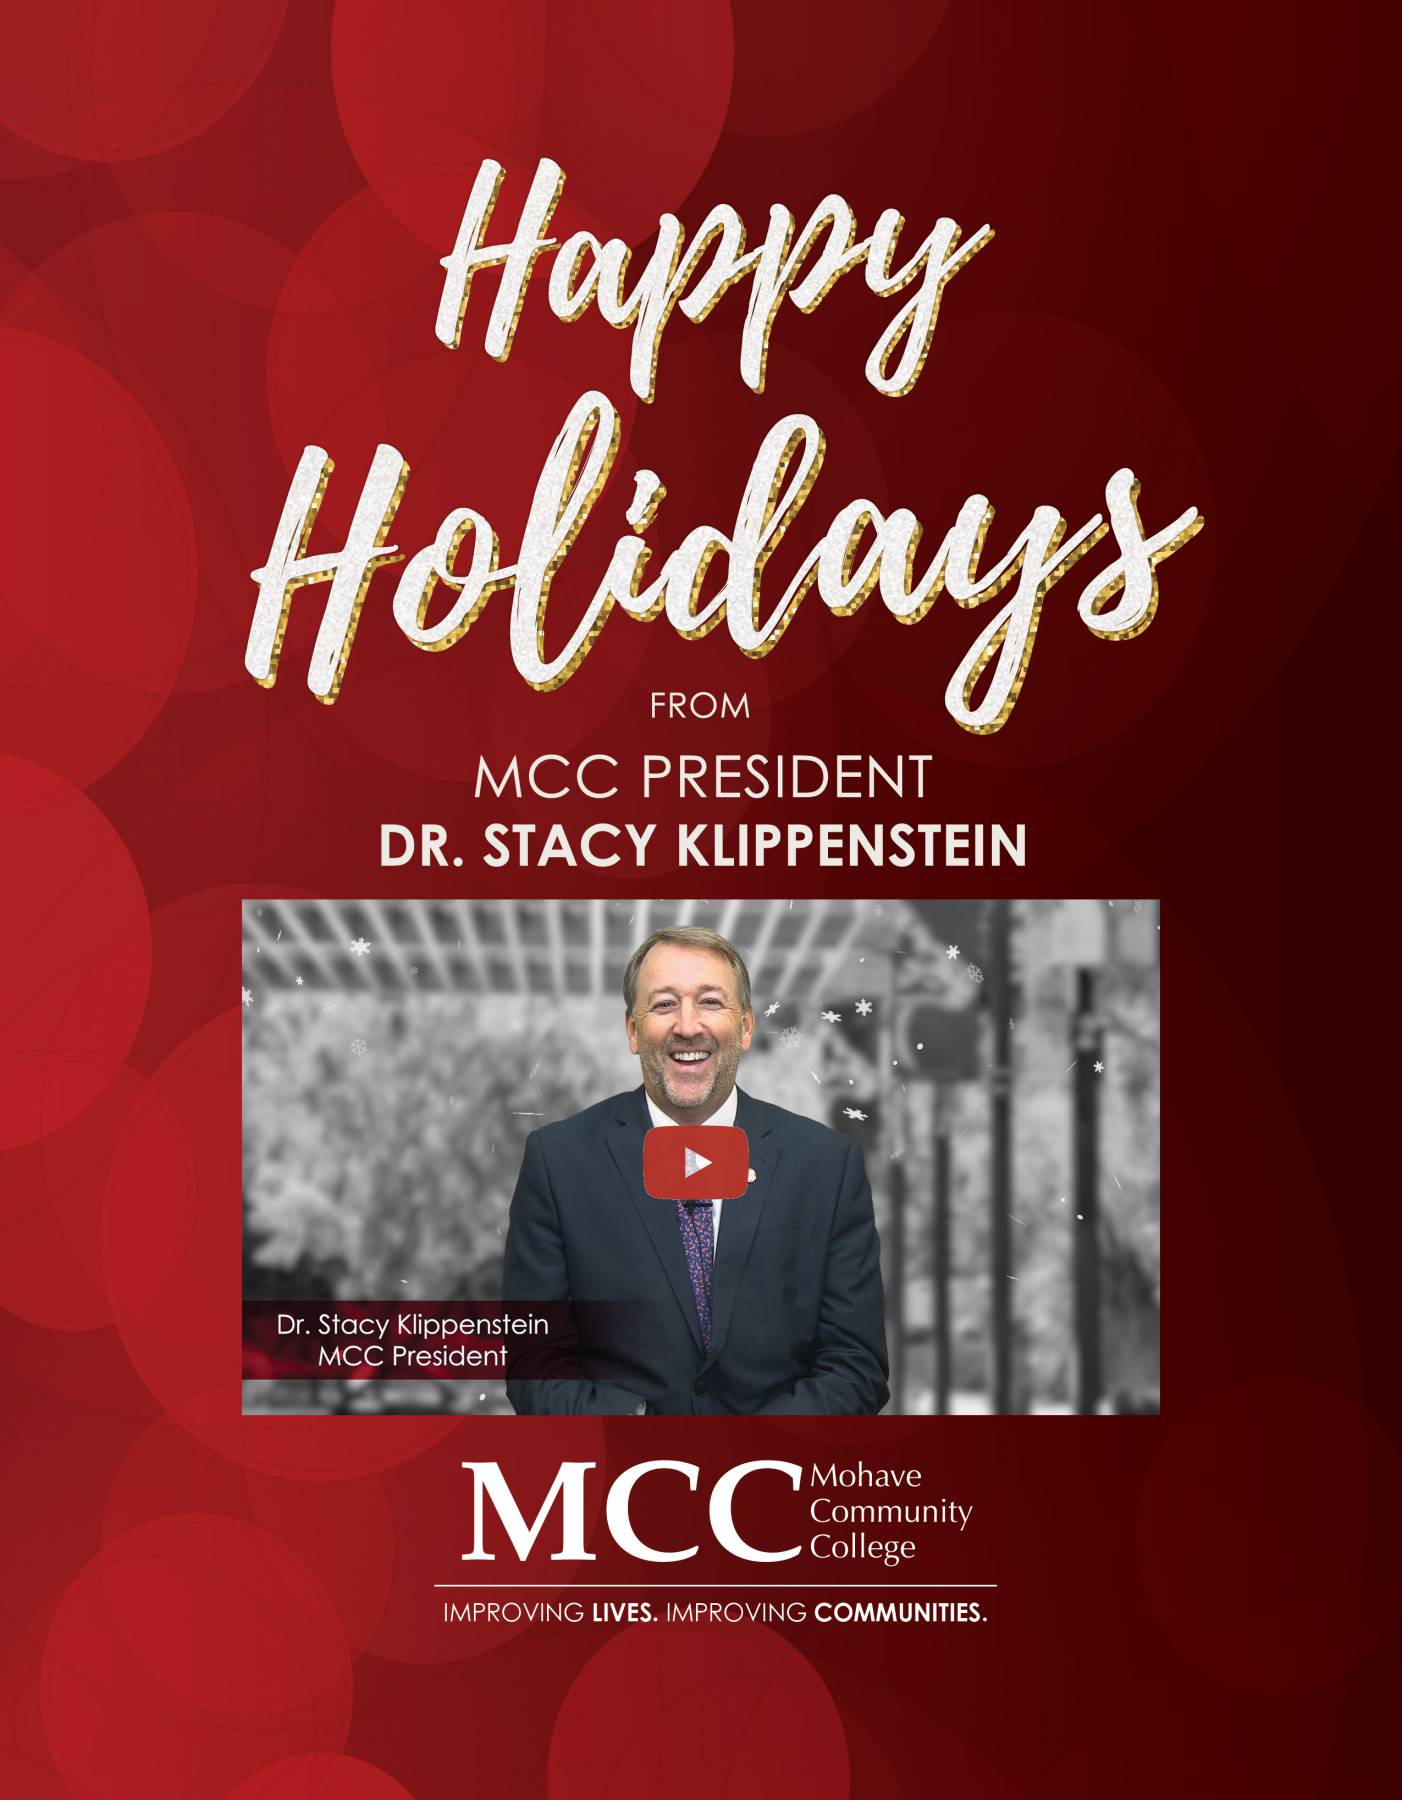 happy holidays from MCC president dr. stacy klippenstein in white letters over red background